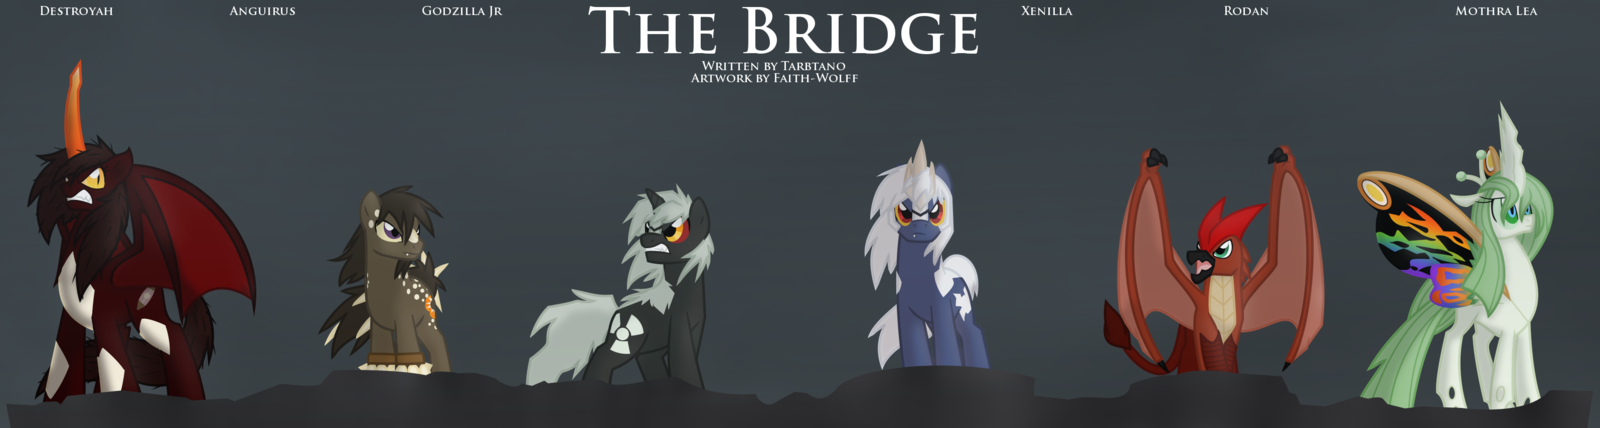 the bridge episode guide wiki